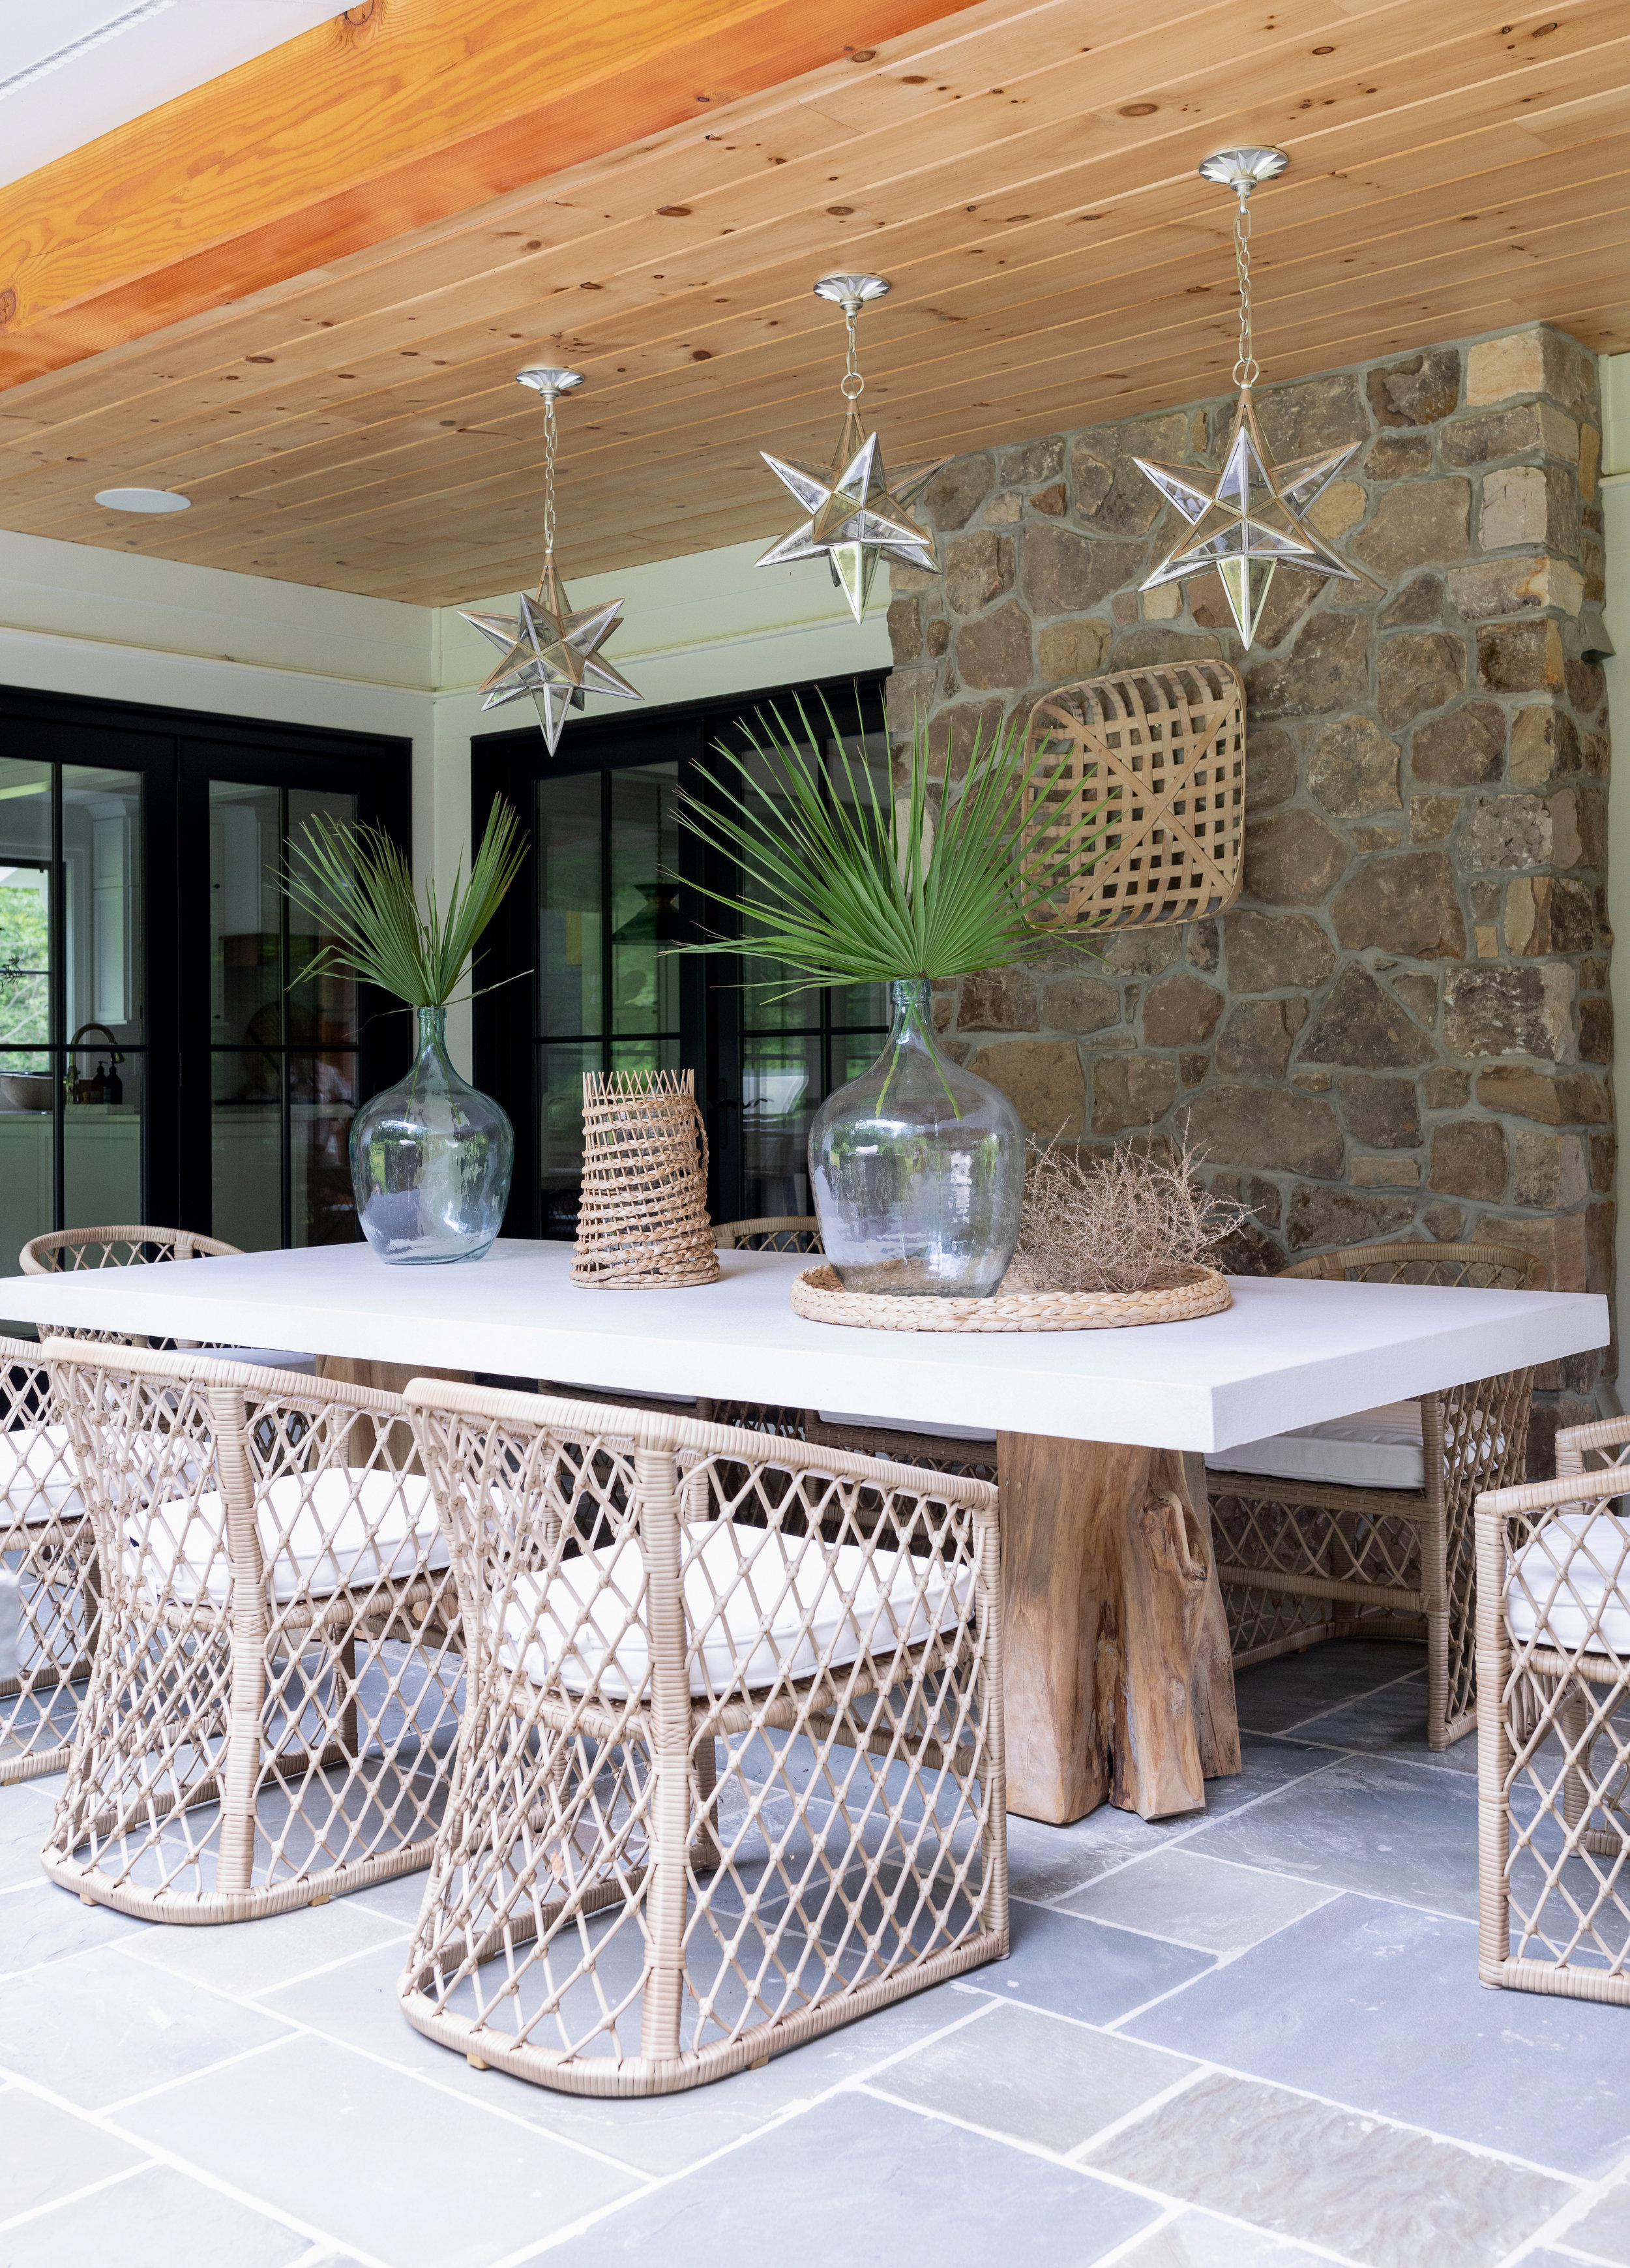 House Tour-  I Love This House's Modern Twist on Classic Traditional Style 13.jpeg